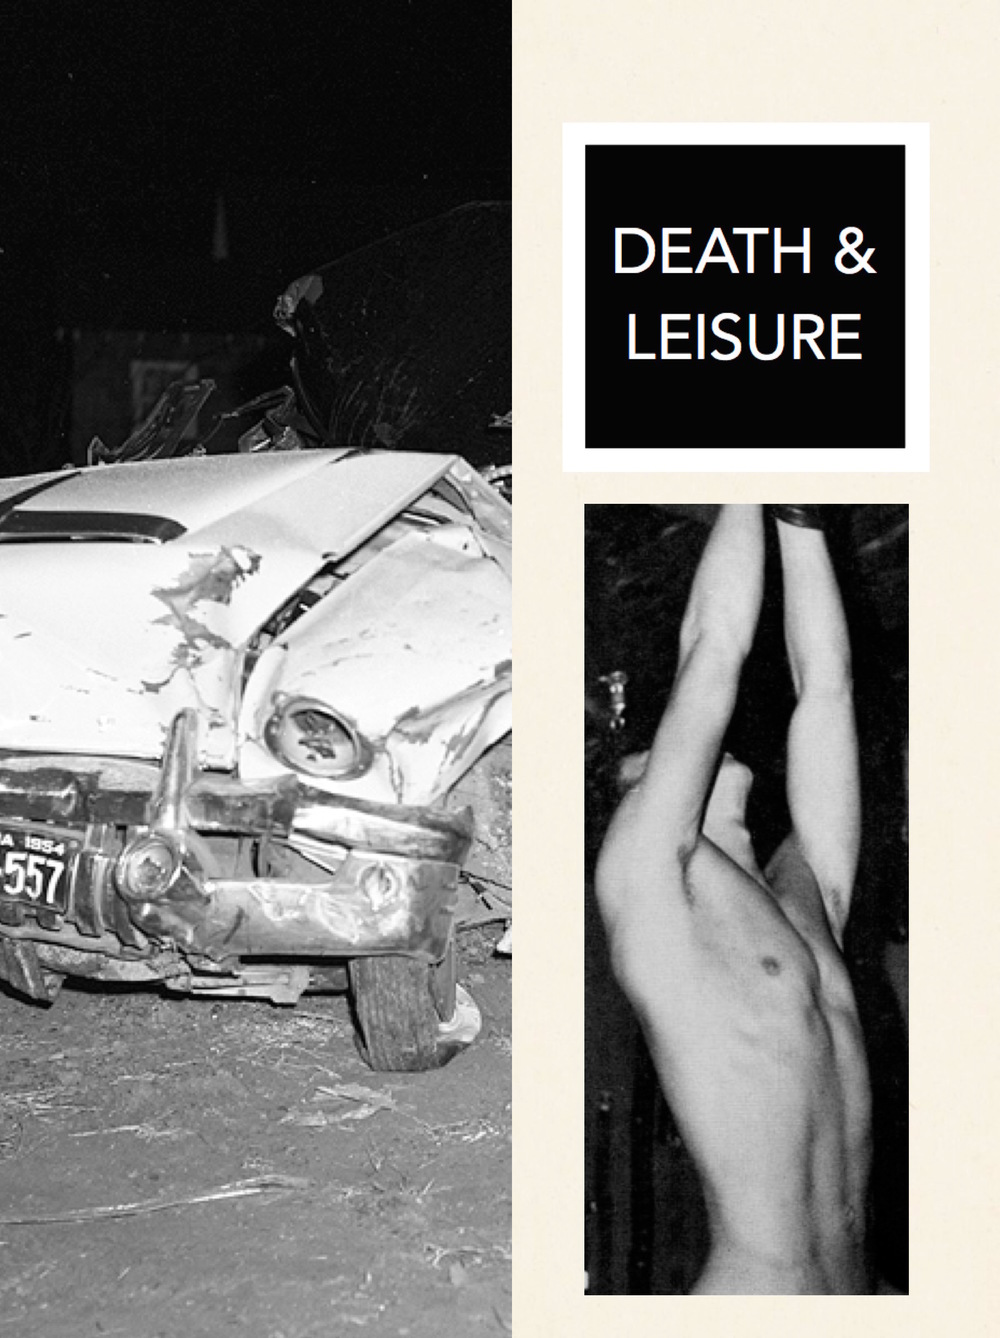 DEATH & LEISURE POSTCARD 1.jpg